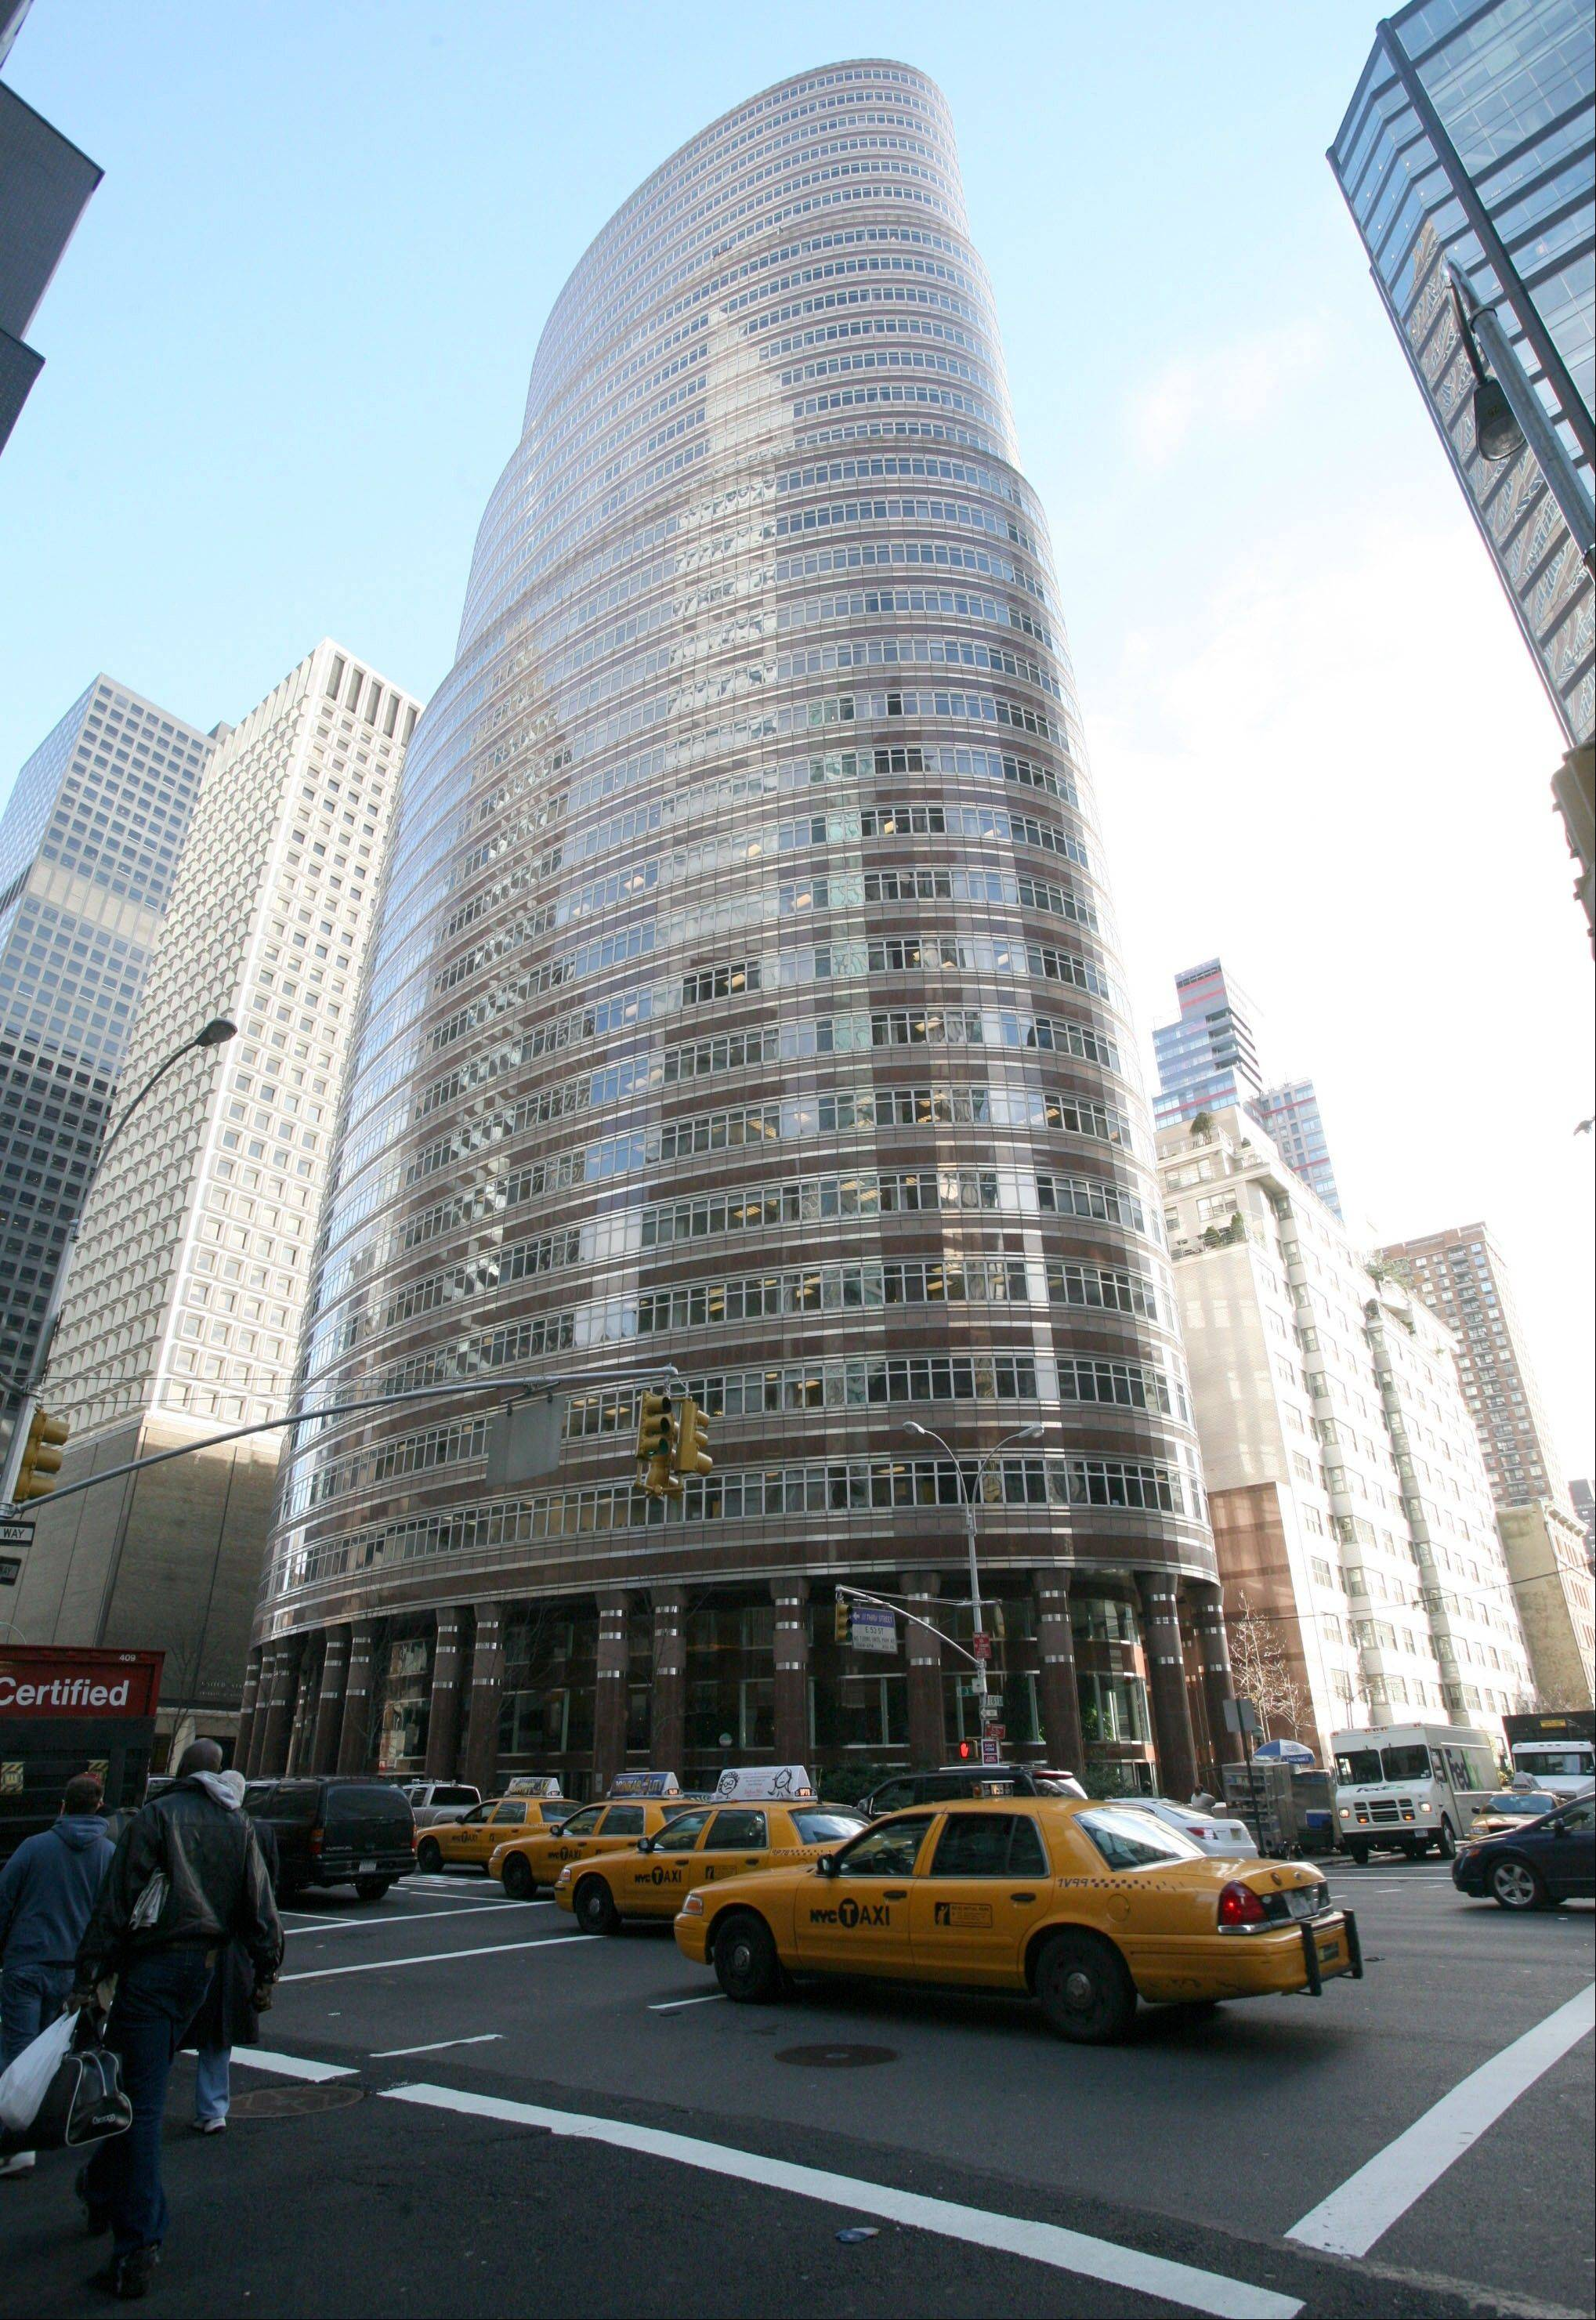 The building where Bernard L. Madoff Investment Securities LLC, have their offices is seen in New York.